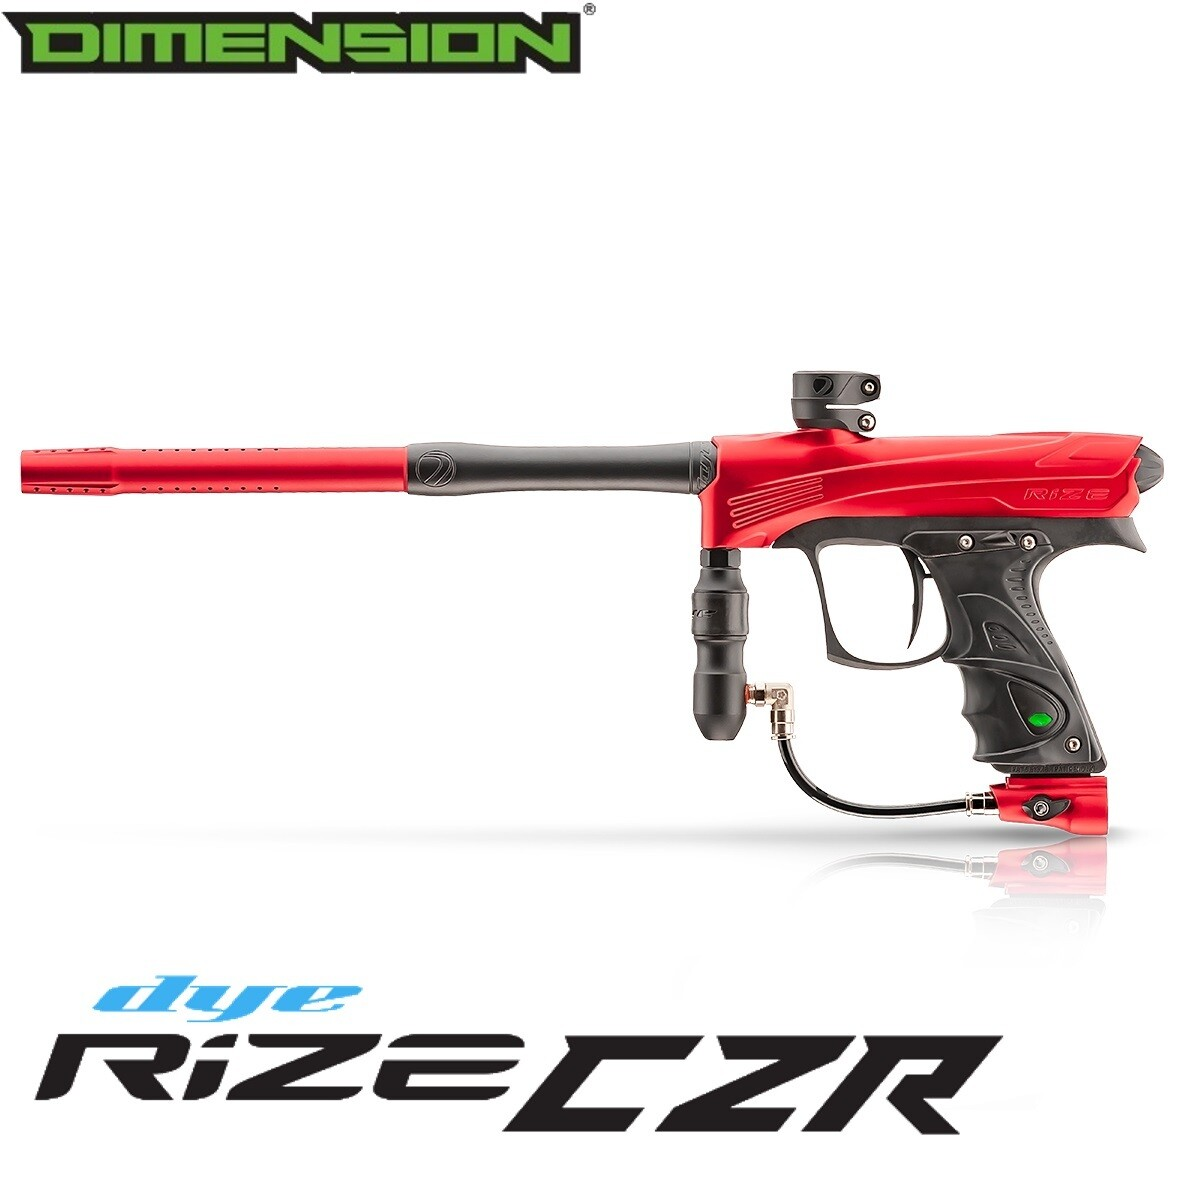 Dye Rize CZR Marker - Red/Black Dust